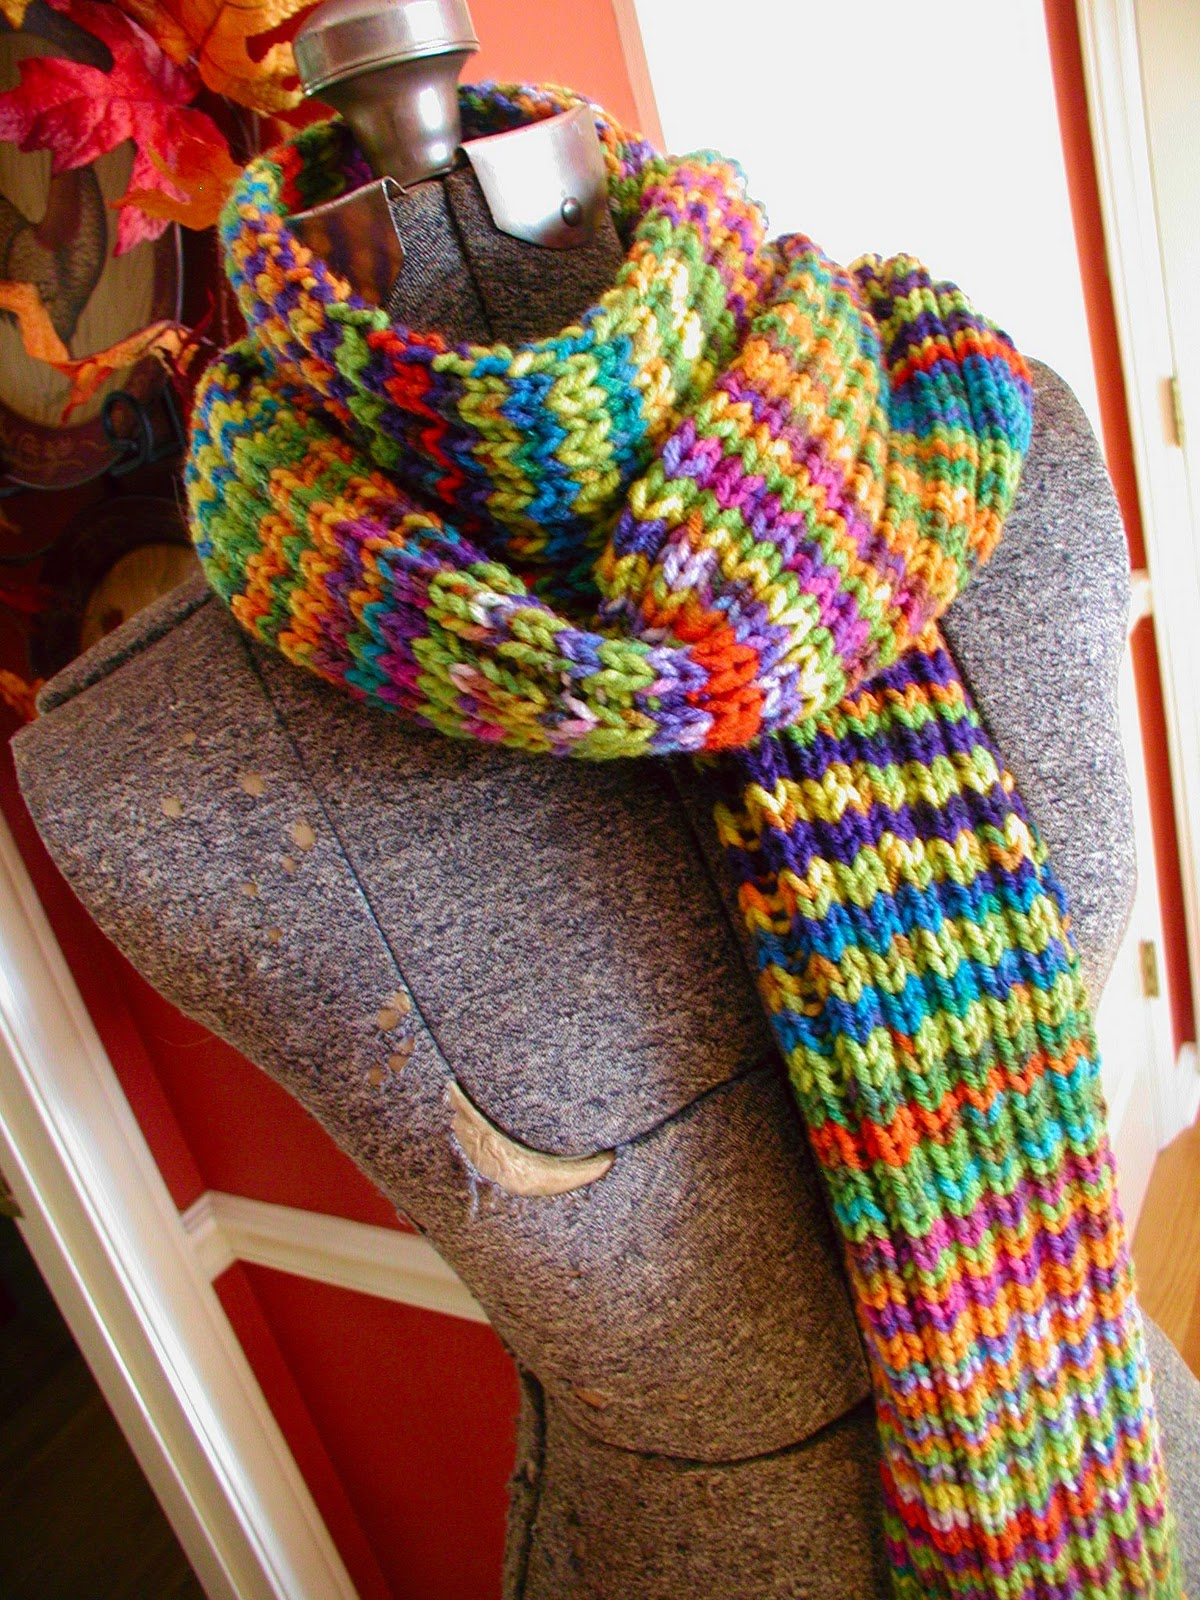 Variegated Yarn Patterns Knitting Fiddlesticks My Crochet And Knitting Ramblings The Technicolor